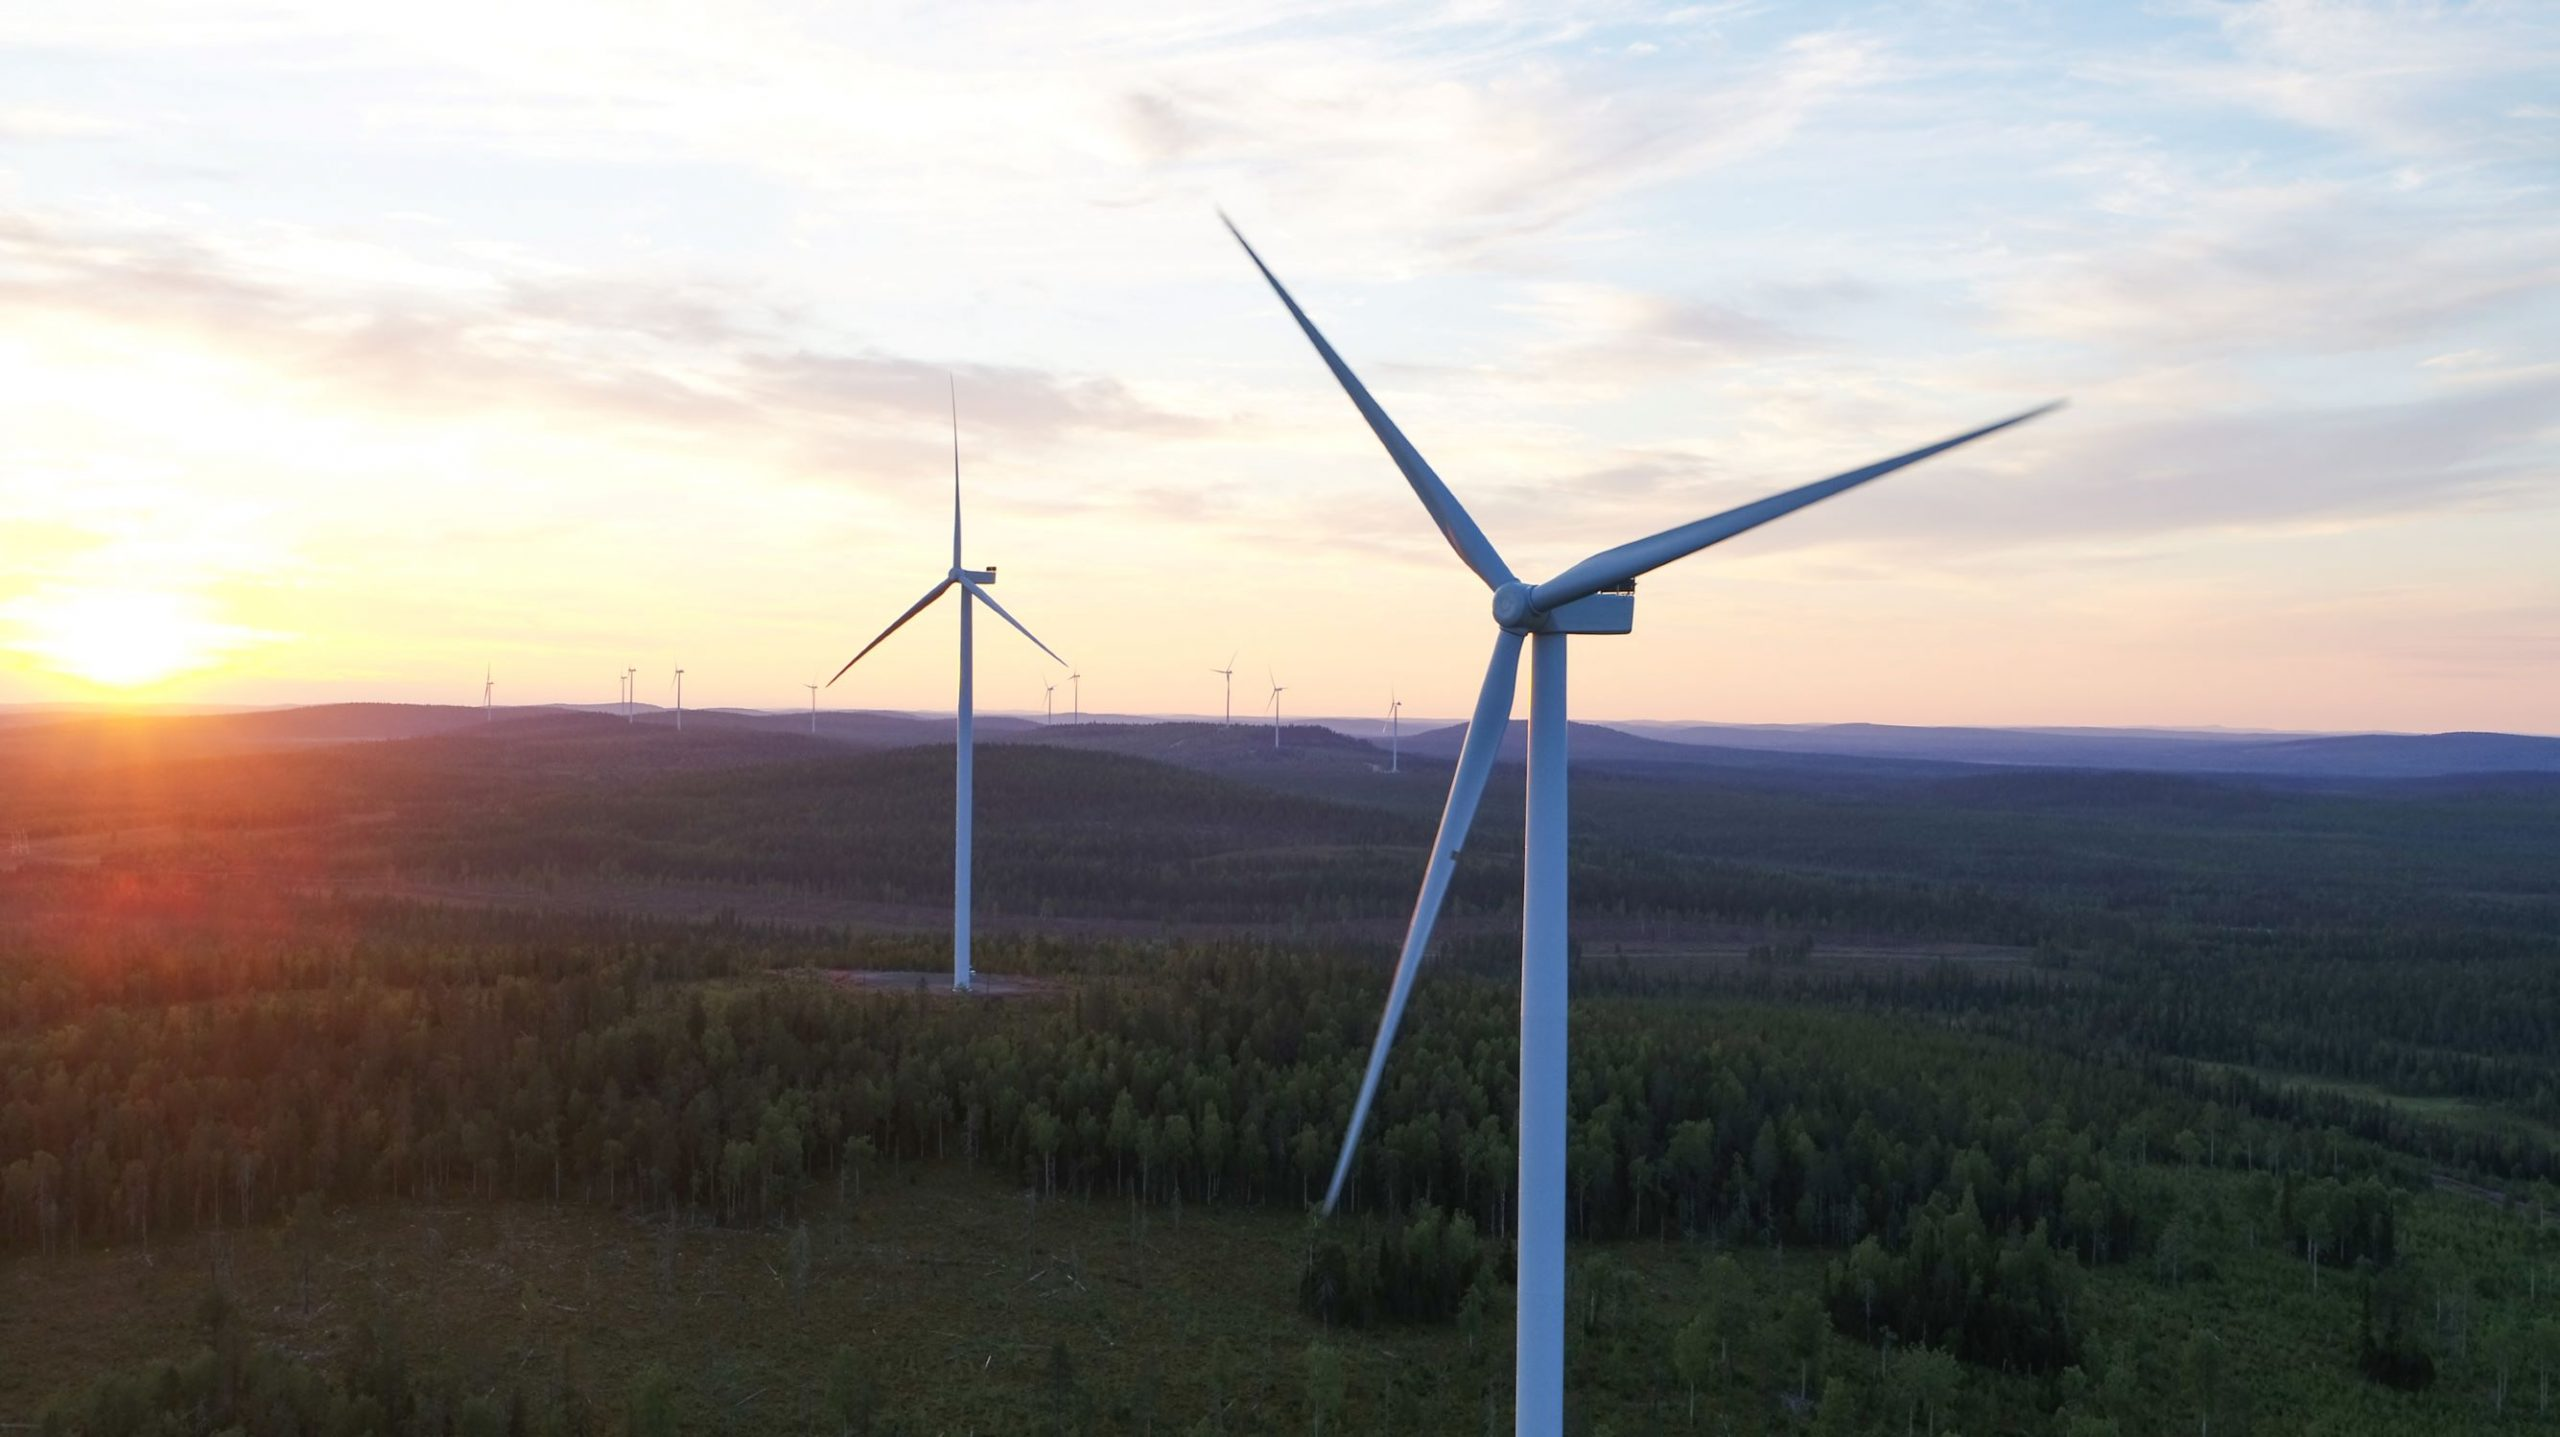 Nordex Group achieves order intake of more than 1.6 GW in the first quarter of 2020